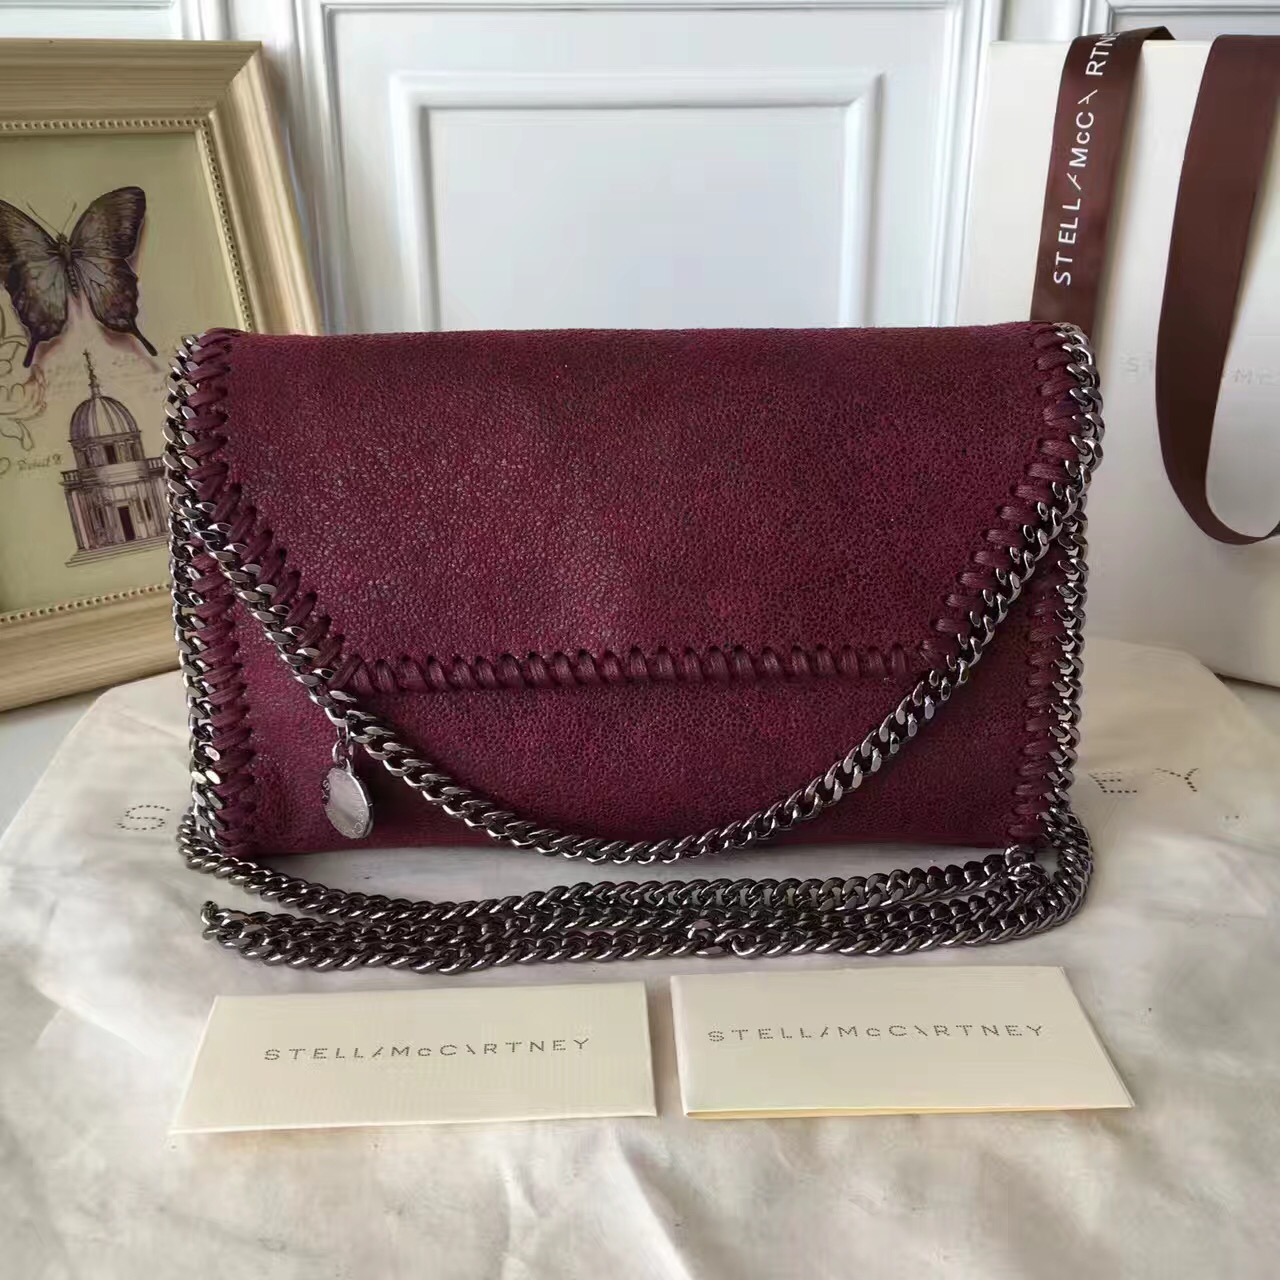 Stella McCartney Falabella Shaggy Deer Mini Bag Burgundy